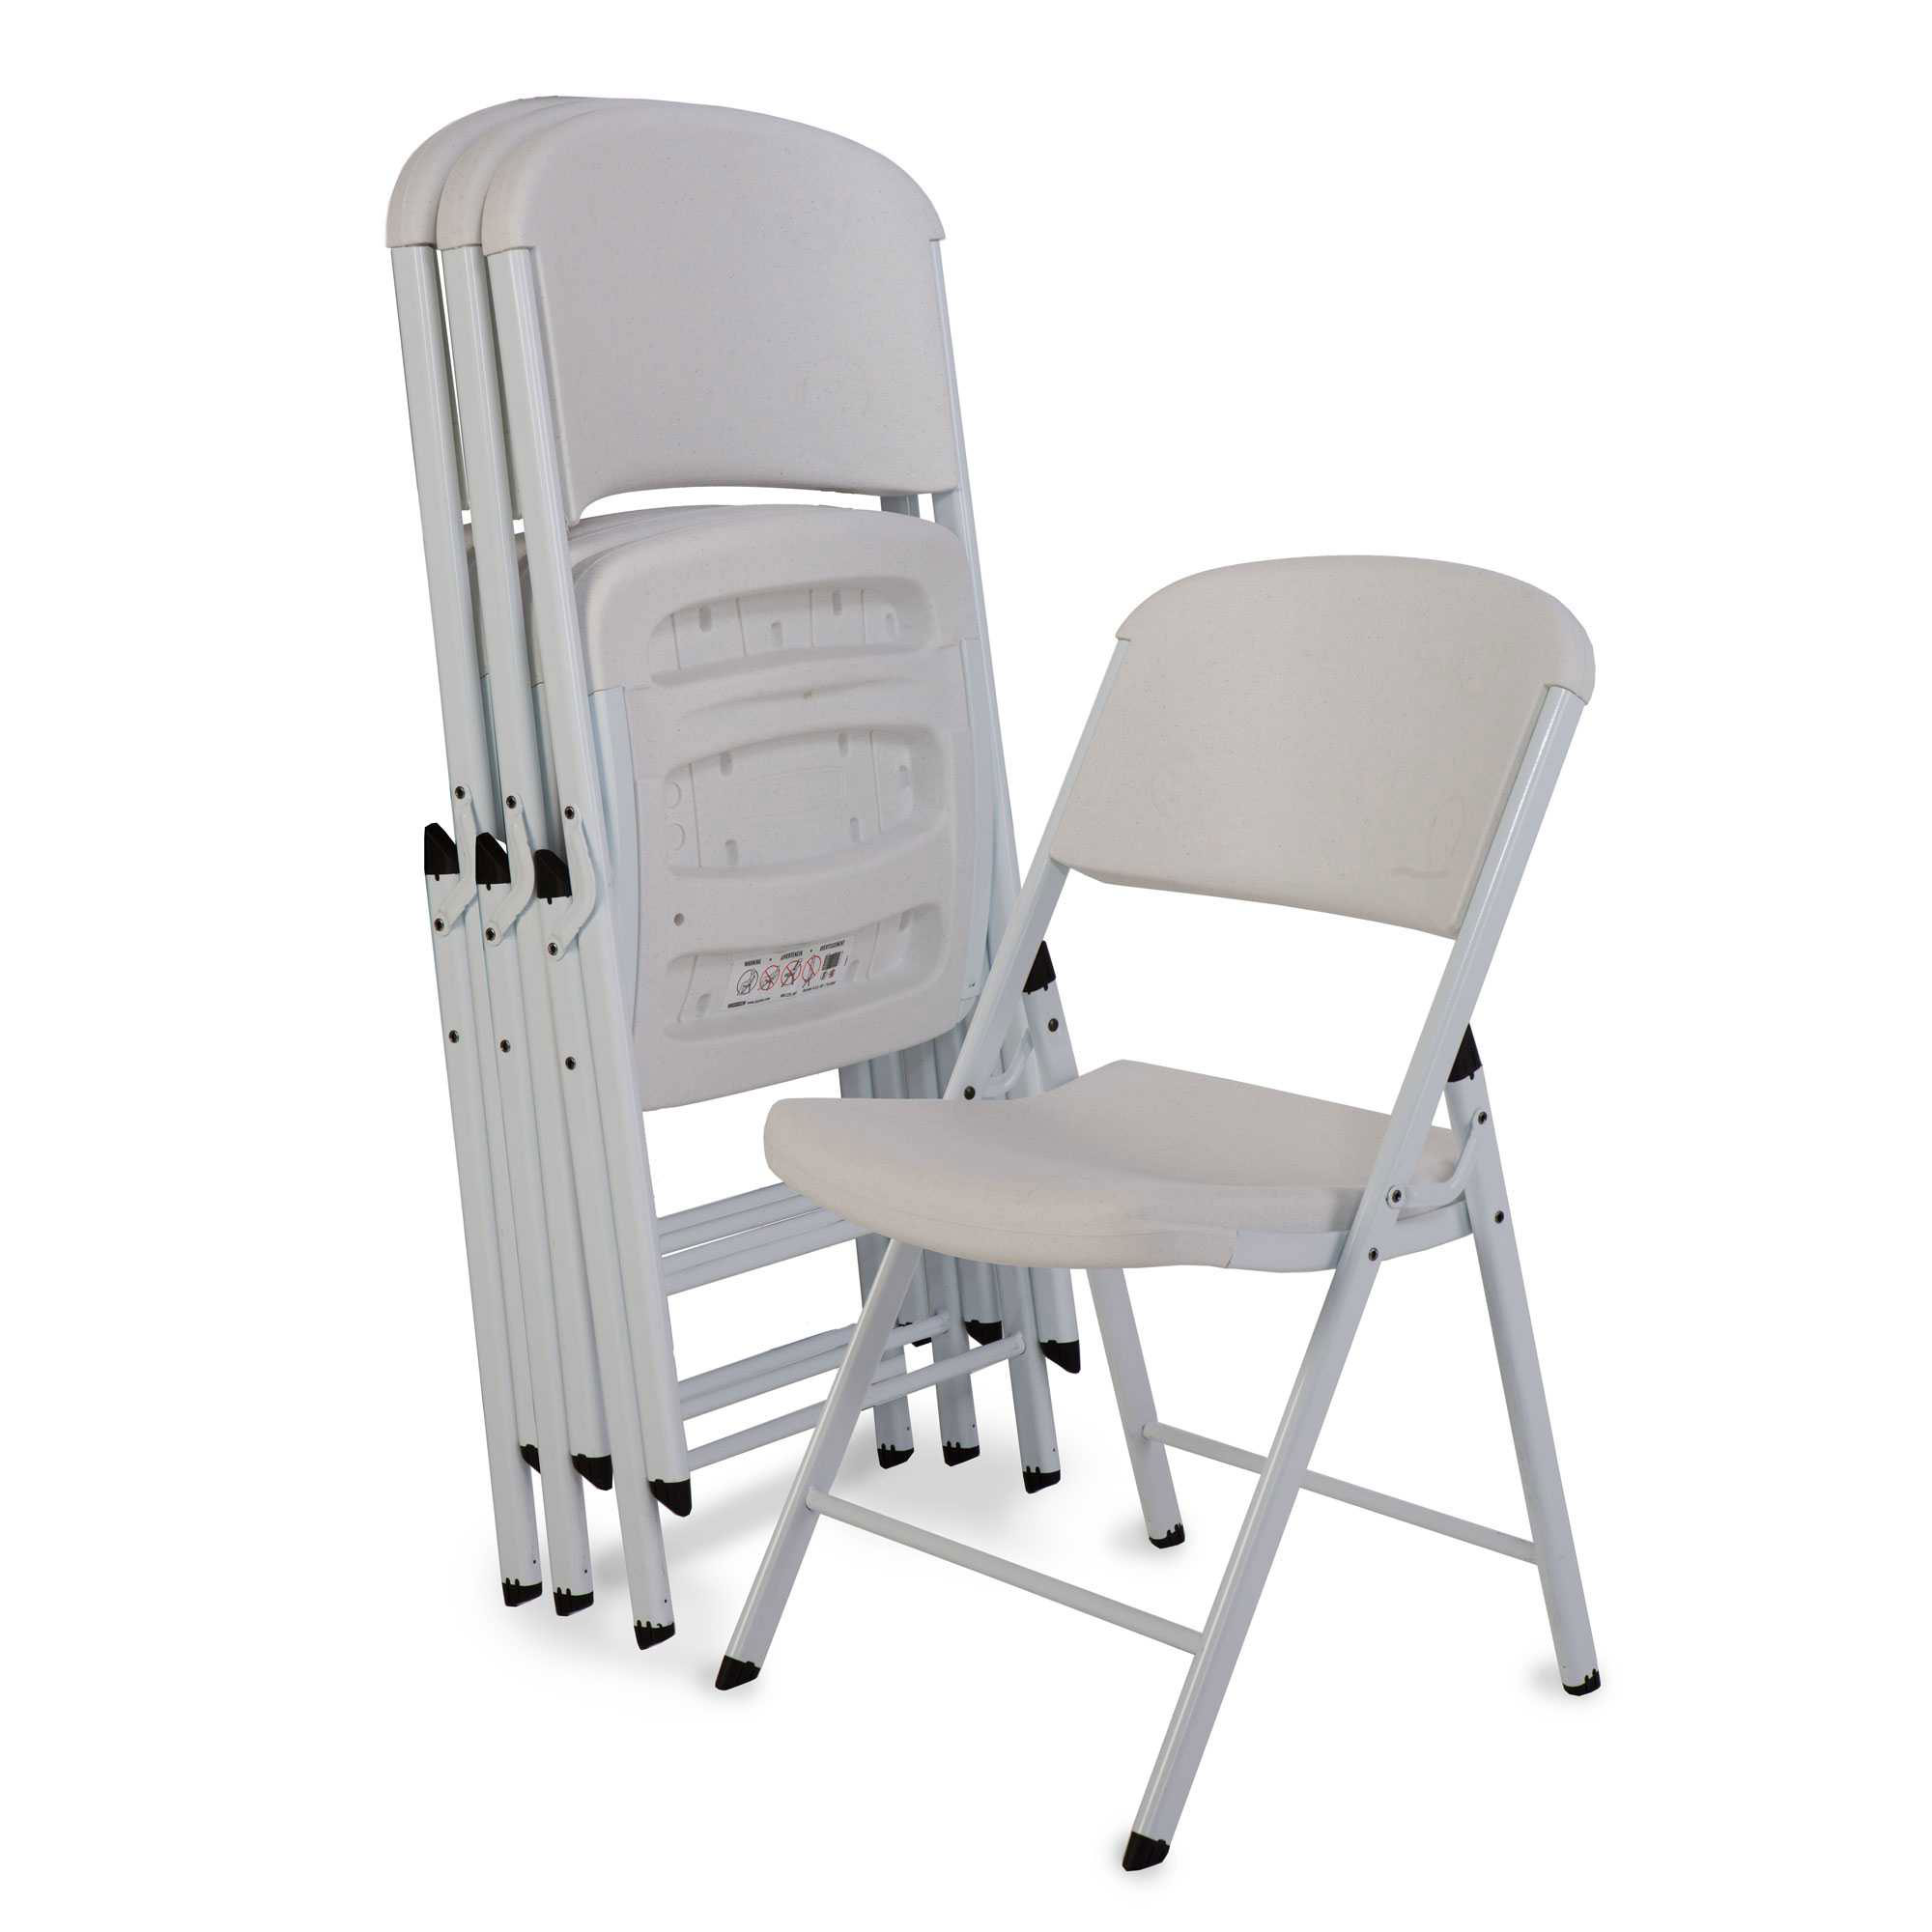 Lifetime White Wedding Chair 32 Pack on Sale with Fast Shipping